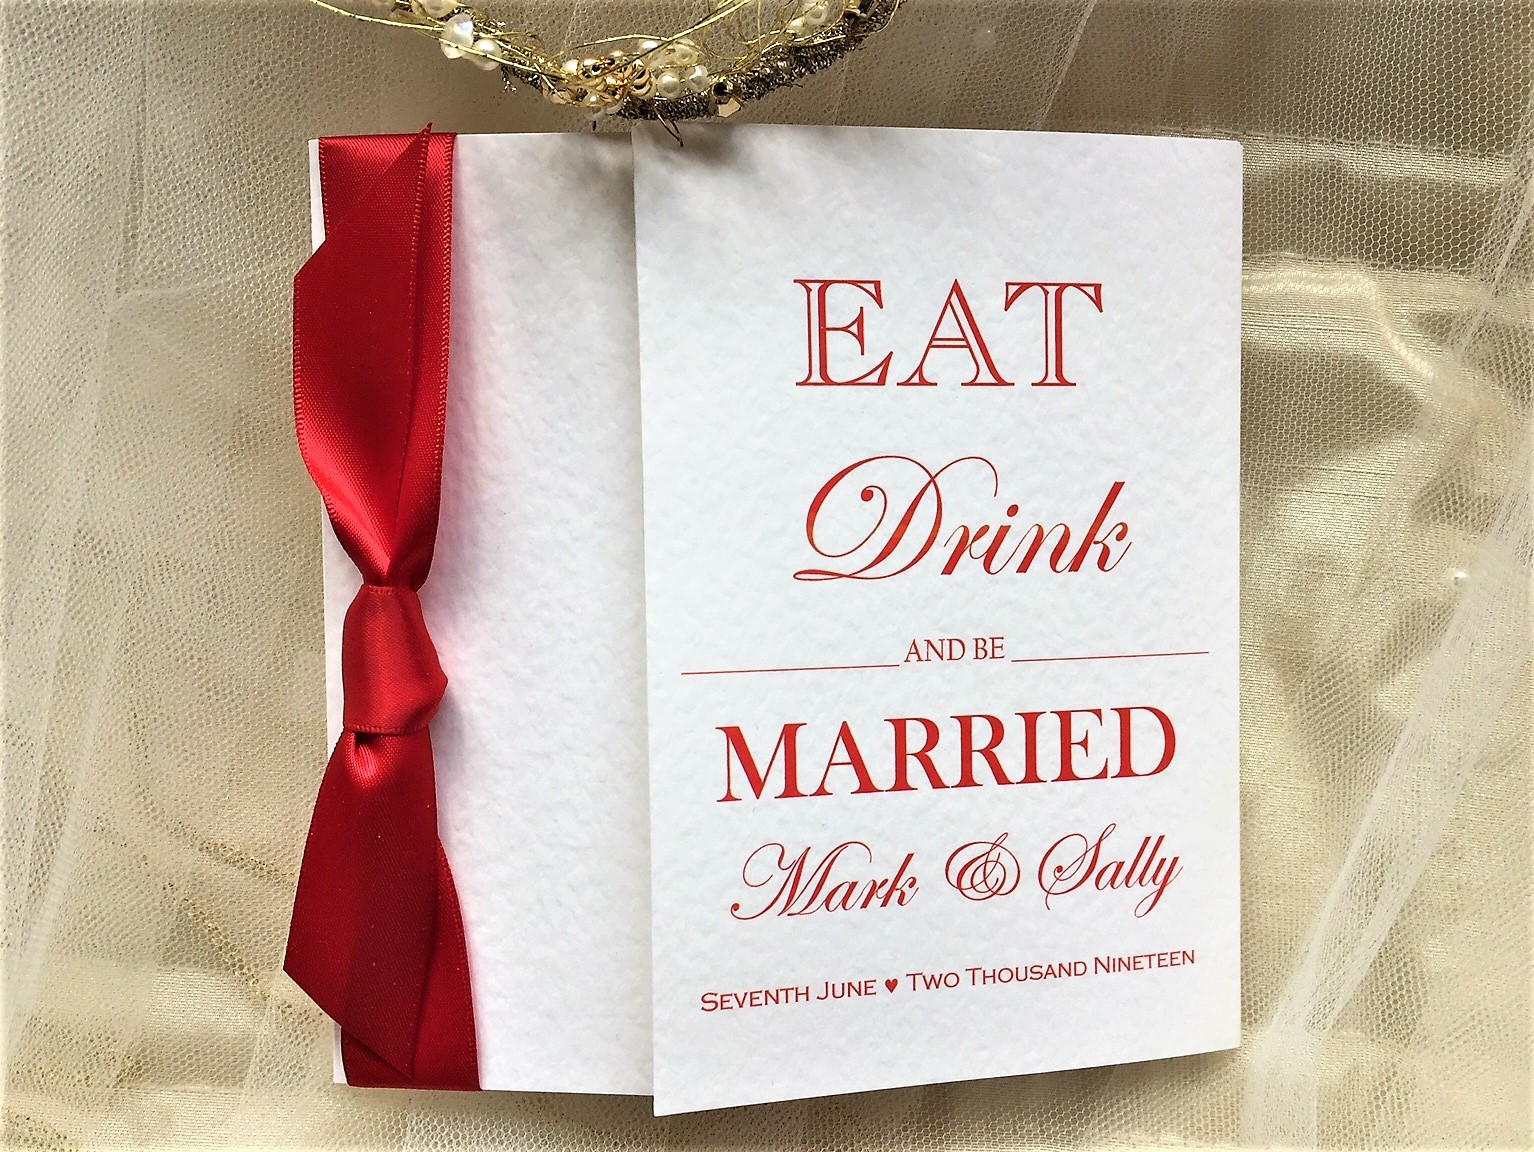 Eat Drink and Be Married Square Gatefold Wedding Invitations